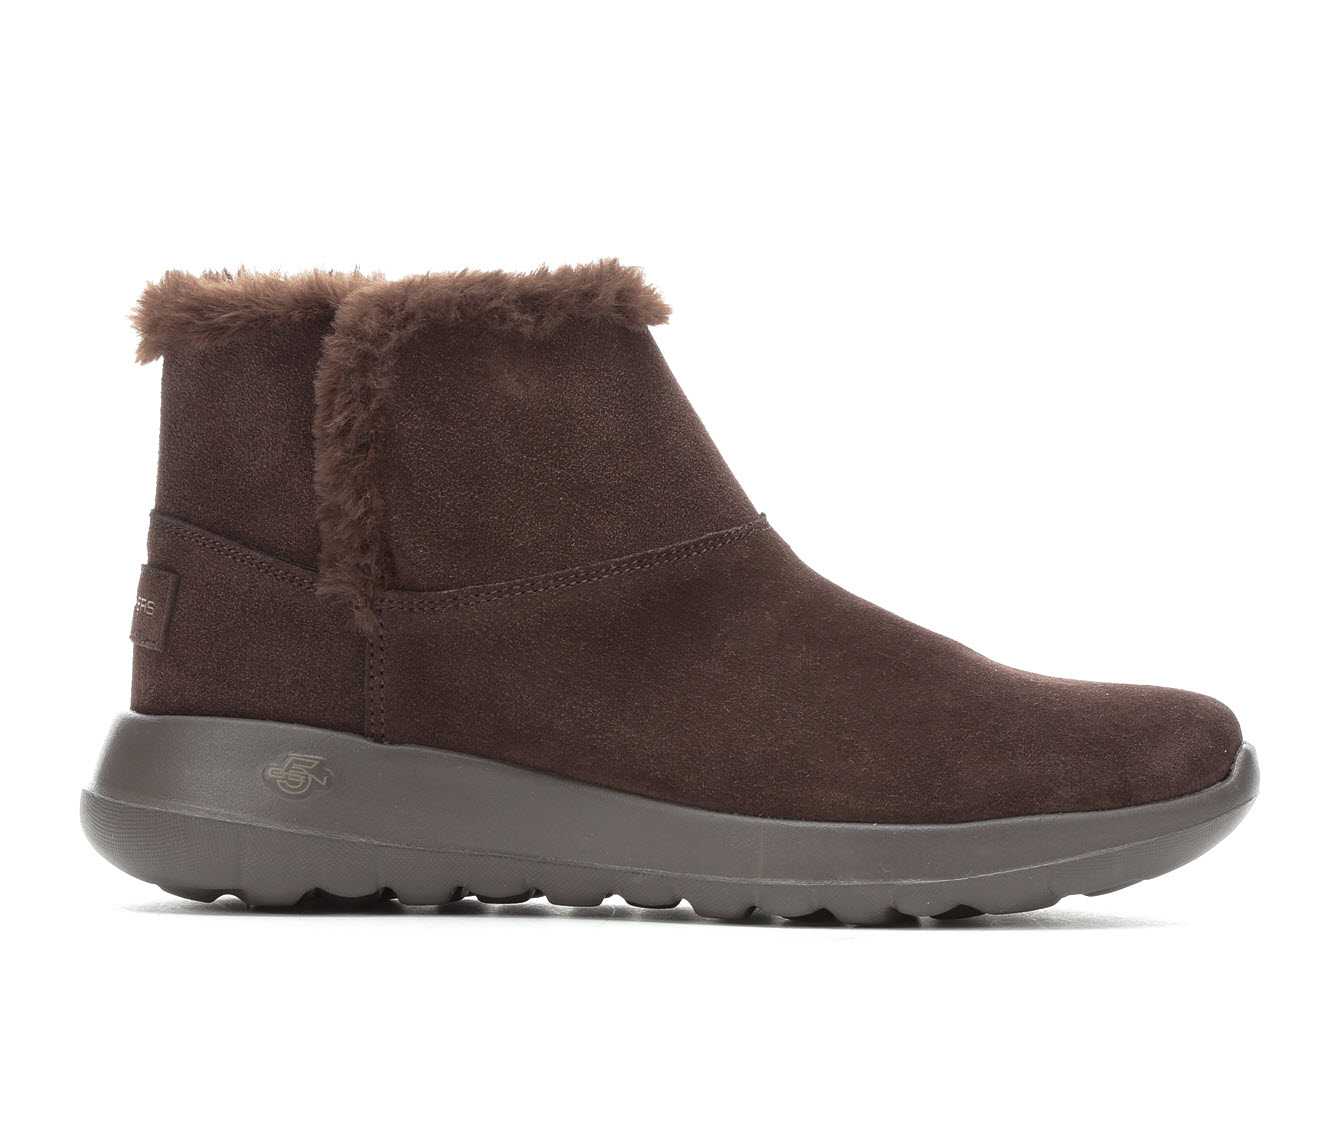 Skechers Go On the Go Bundle Up Women's Boot (Brown Faux Leather)